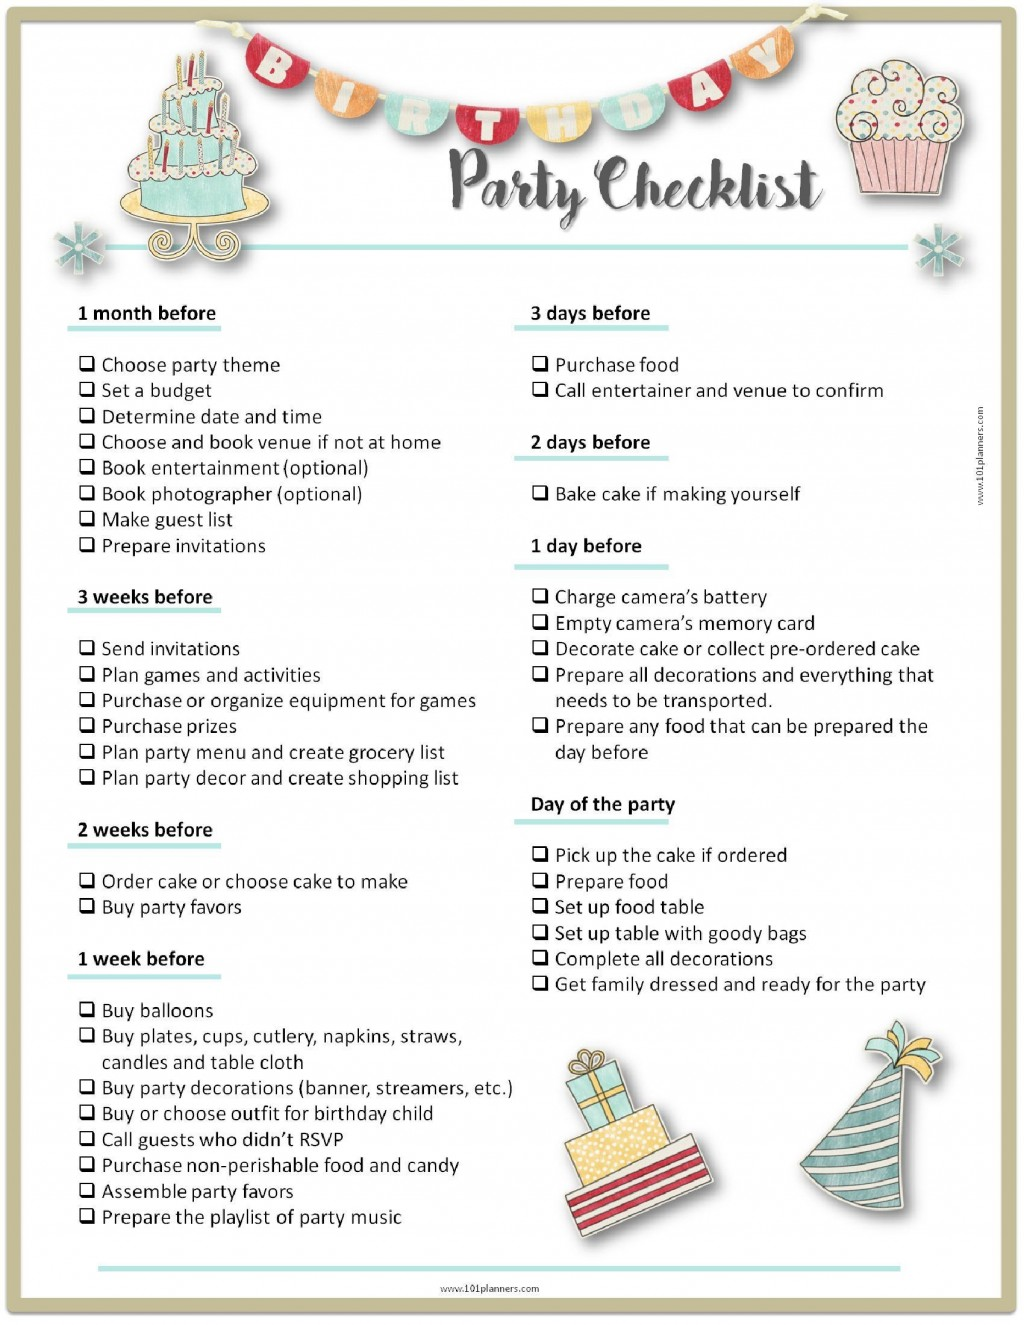 000 Exceptional Party Plan Checklist Template Example  Planning Free Graduation BirthdayLarge